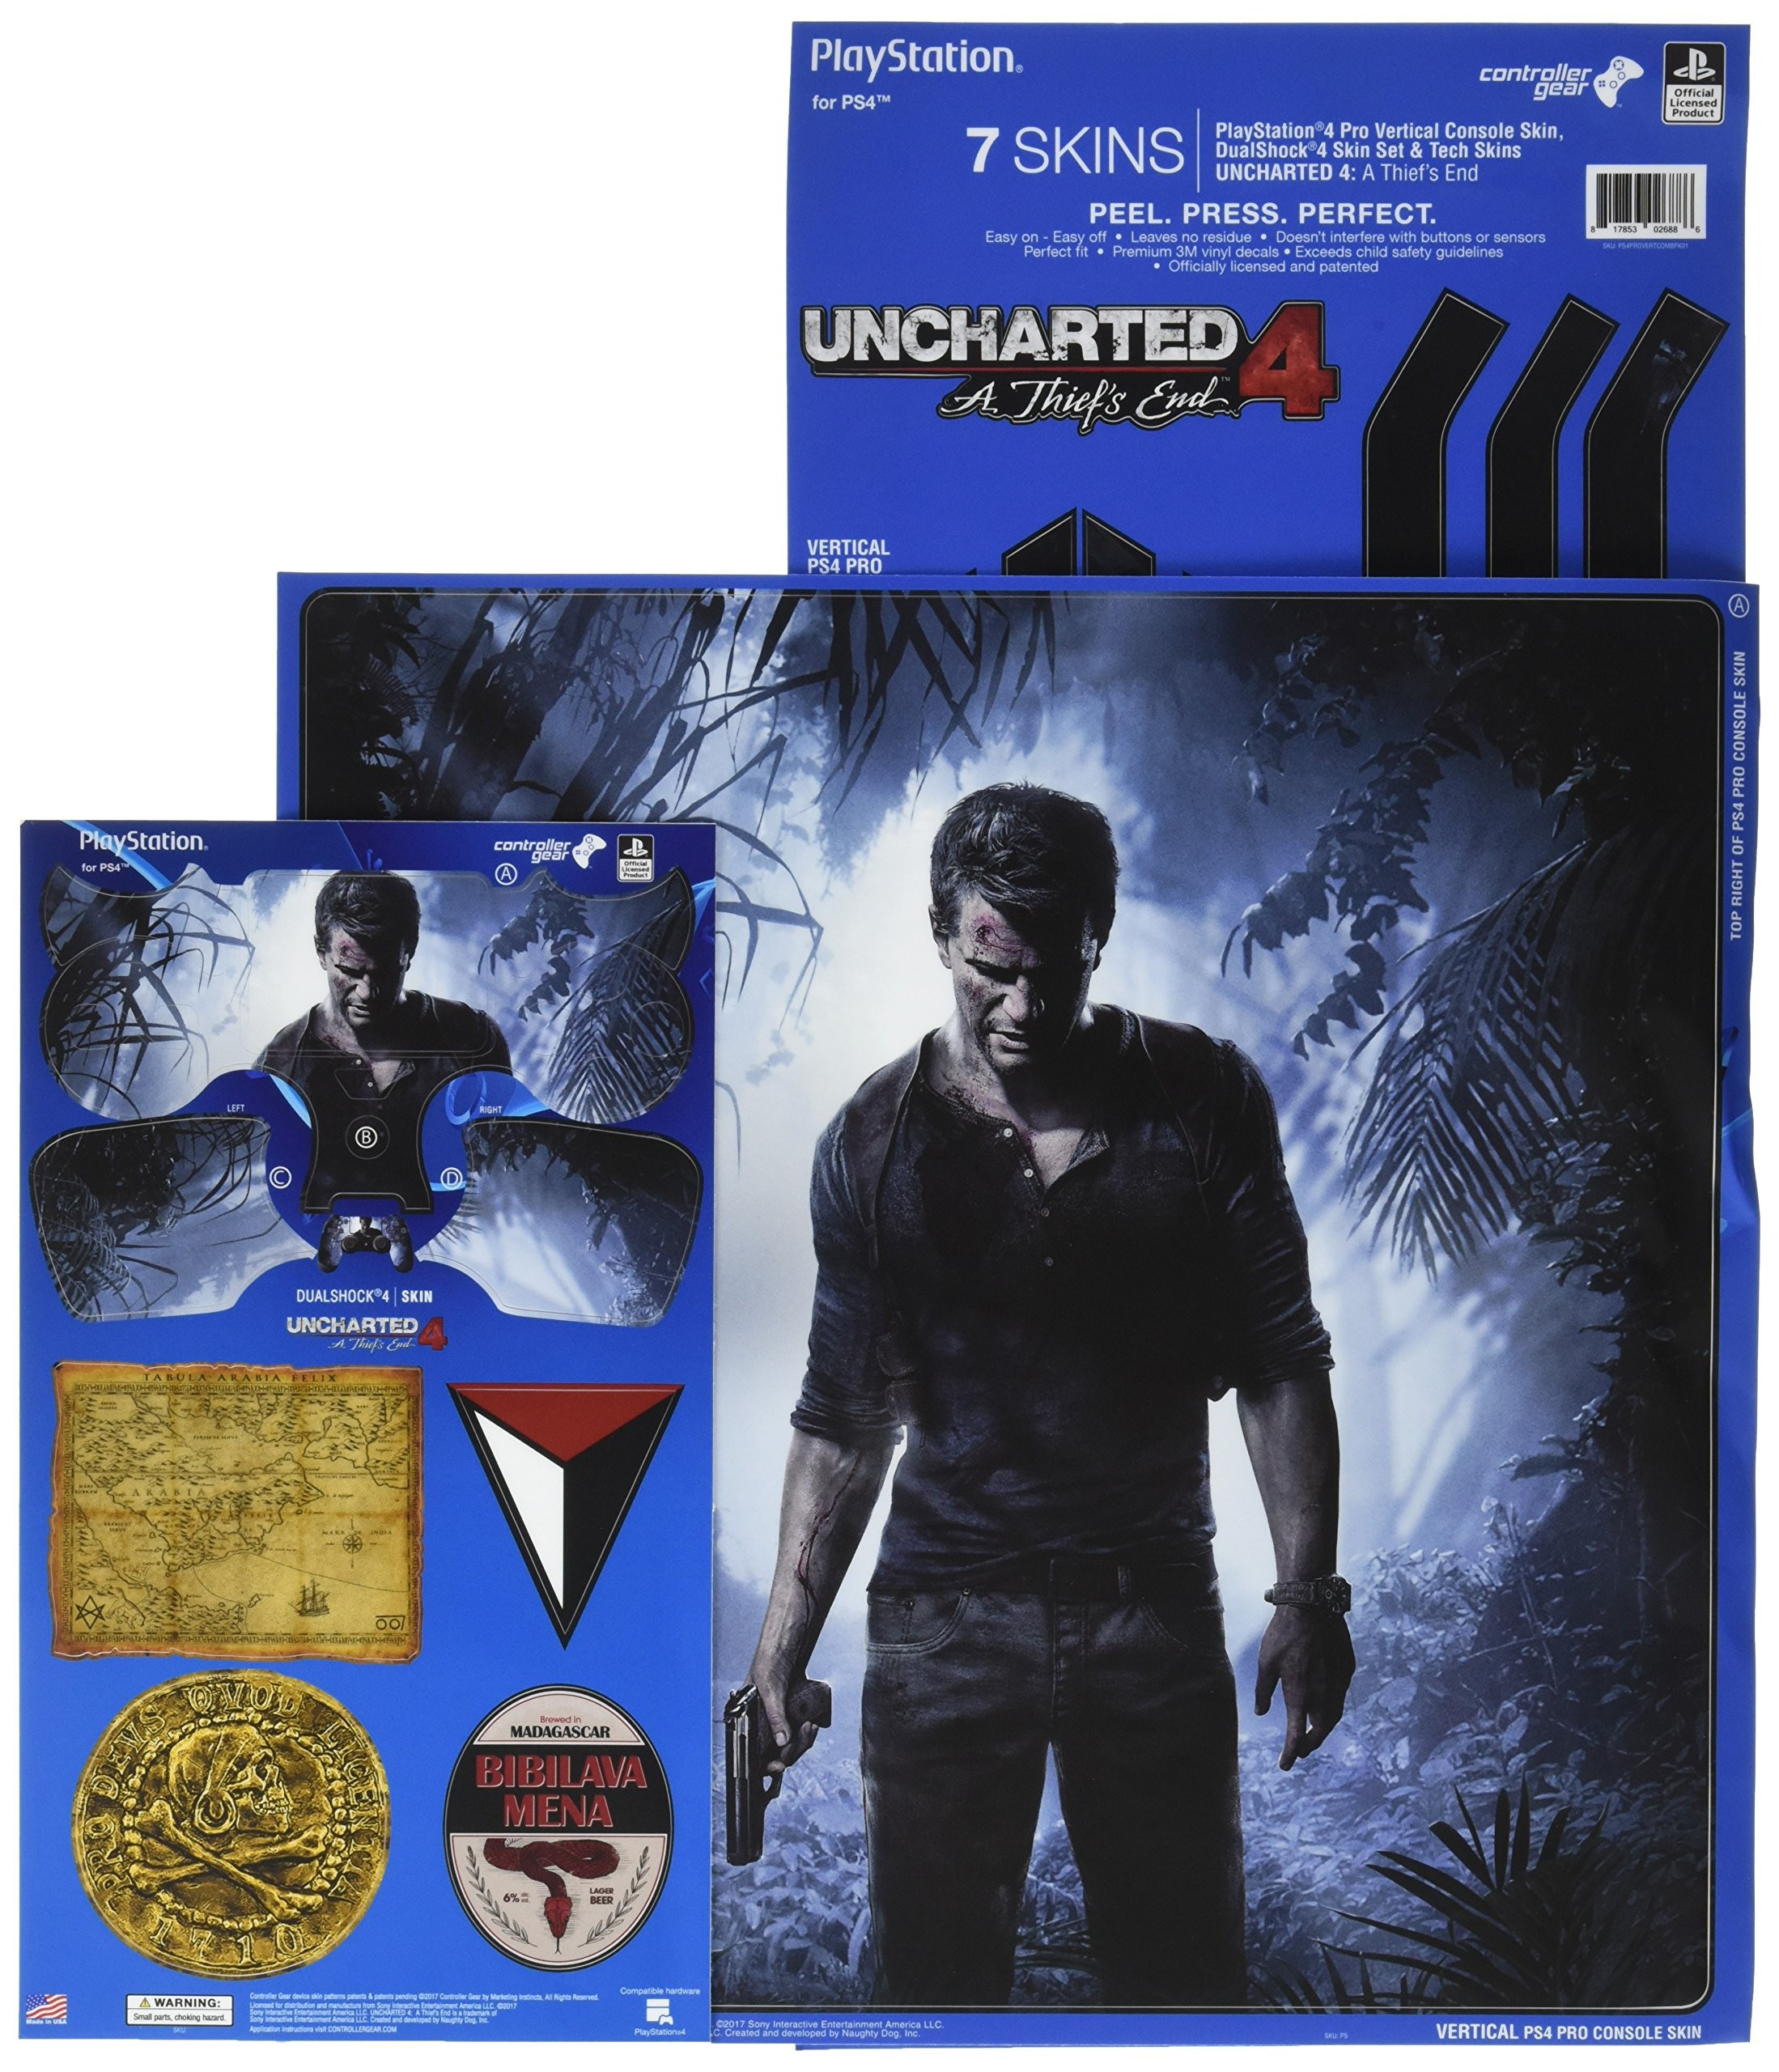 Uncharted 4 A Thief's End - PS4 Pro Vertical Console and Controller Gaming Skin Pack - Officially Licensed by PlayStation